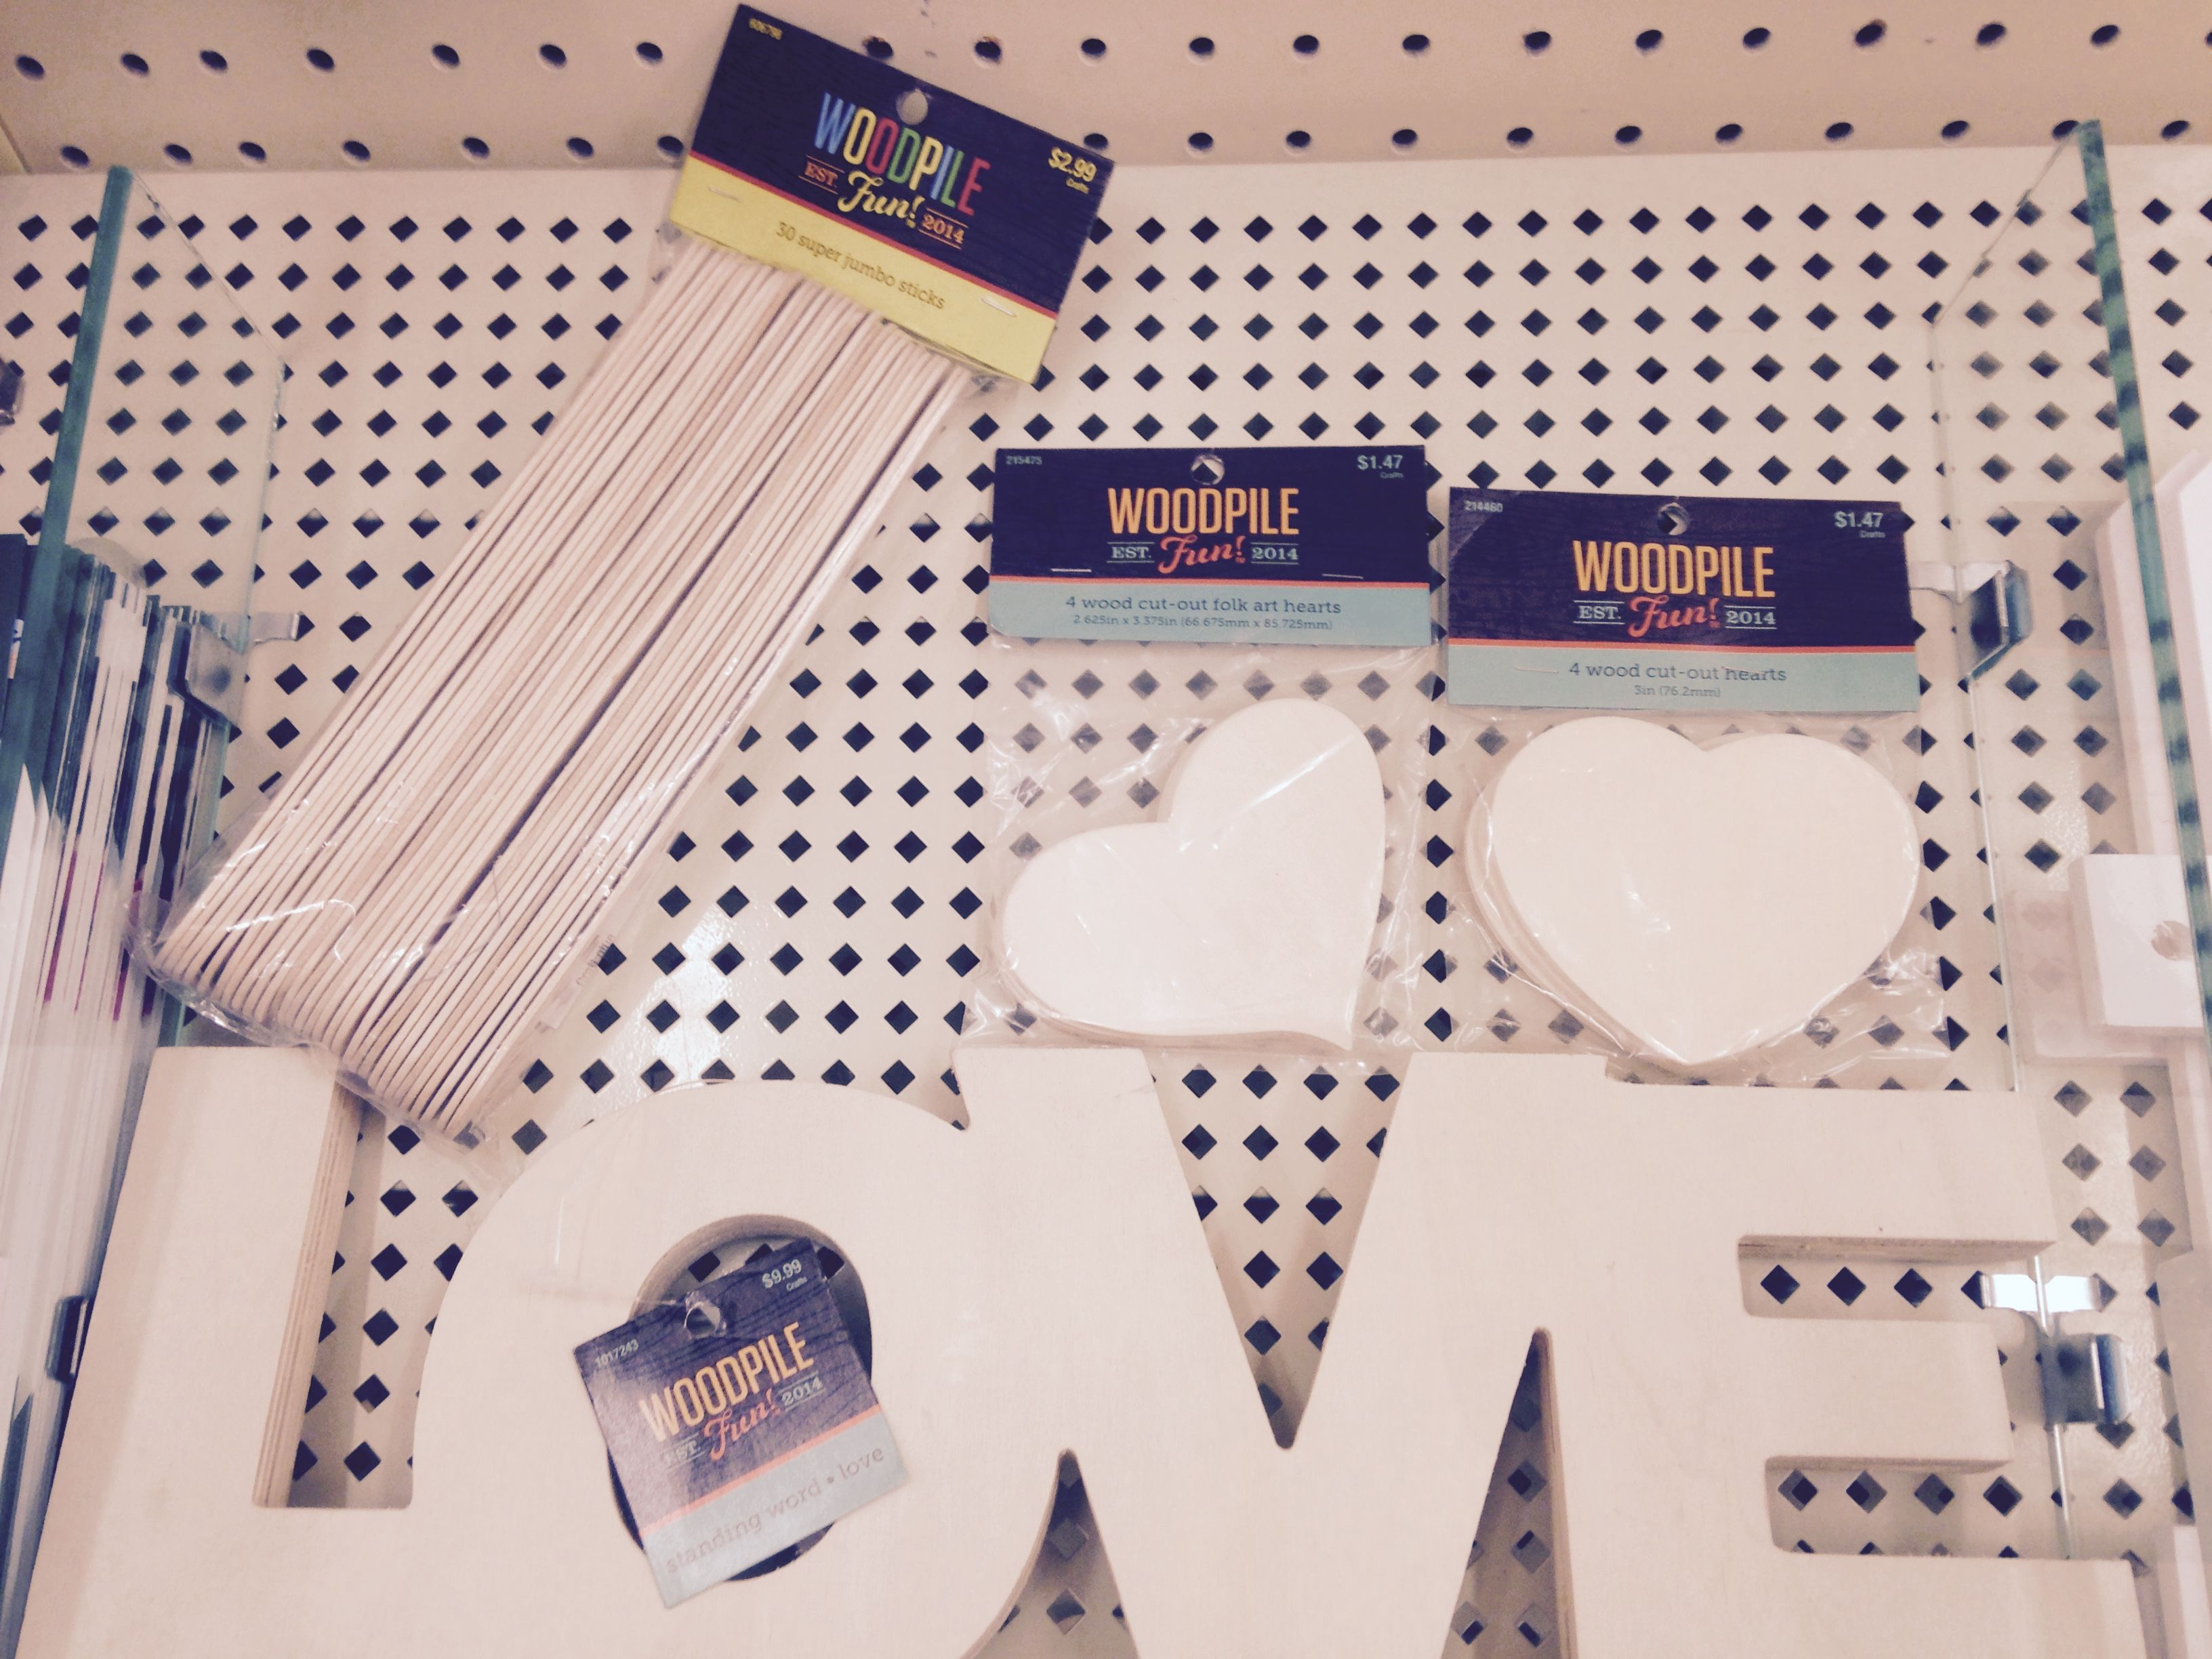 """Extra jumbo craft sticks & 3"""" wooden hearts for """"date night jar"""", wooden LOVE sign @ hobby lobby"""